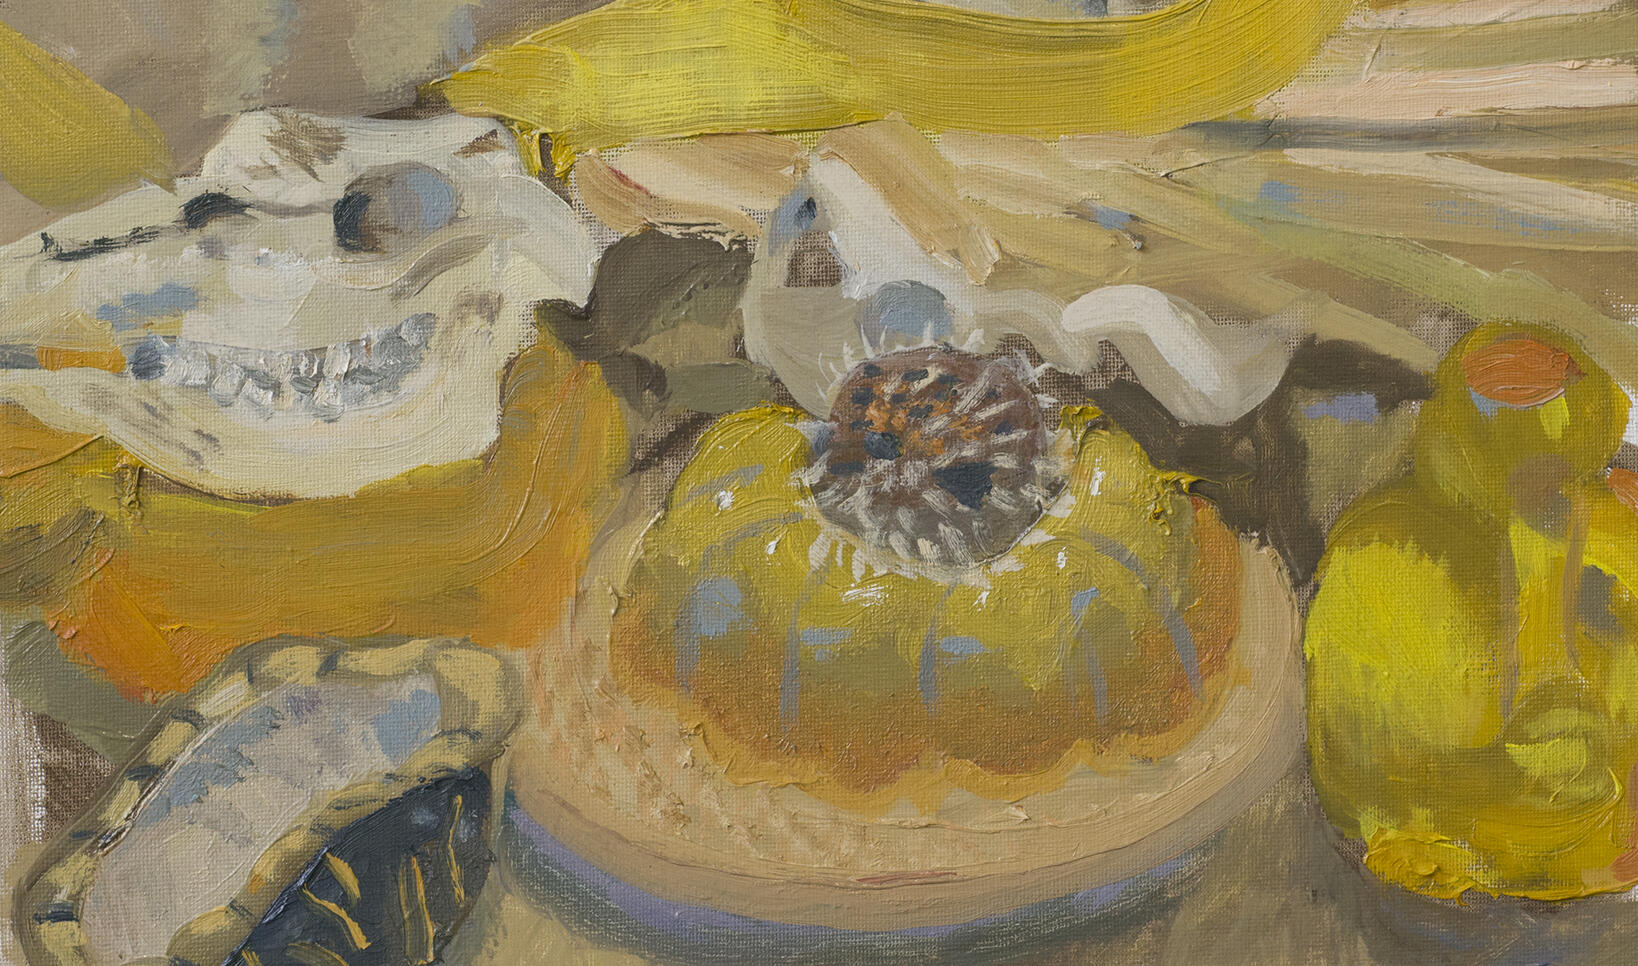 Closely set still life painting rendered in shades of yellow. ; Juliana Merkt